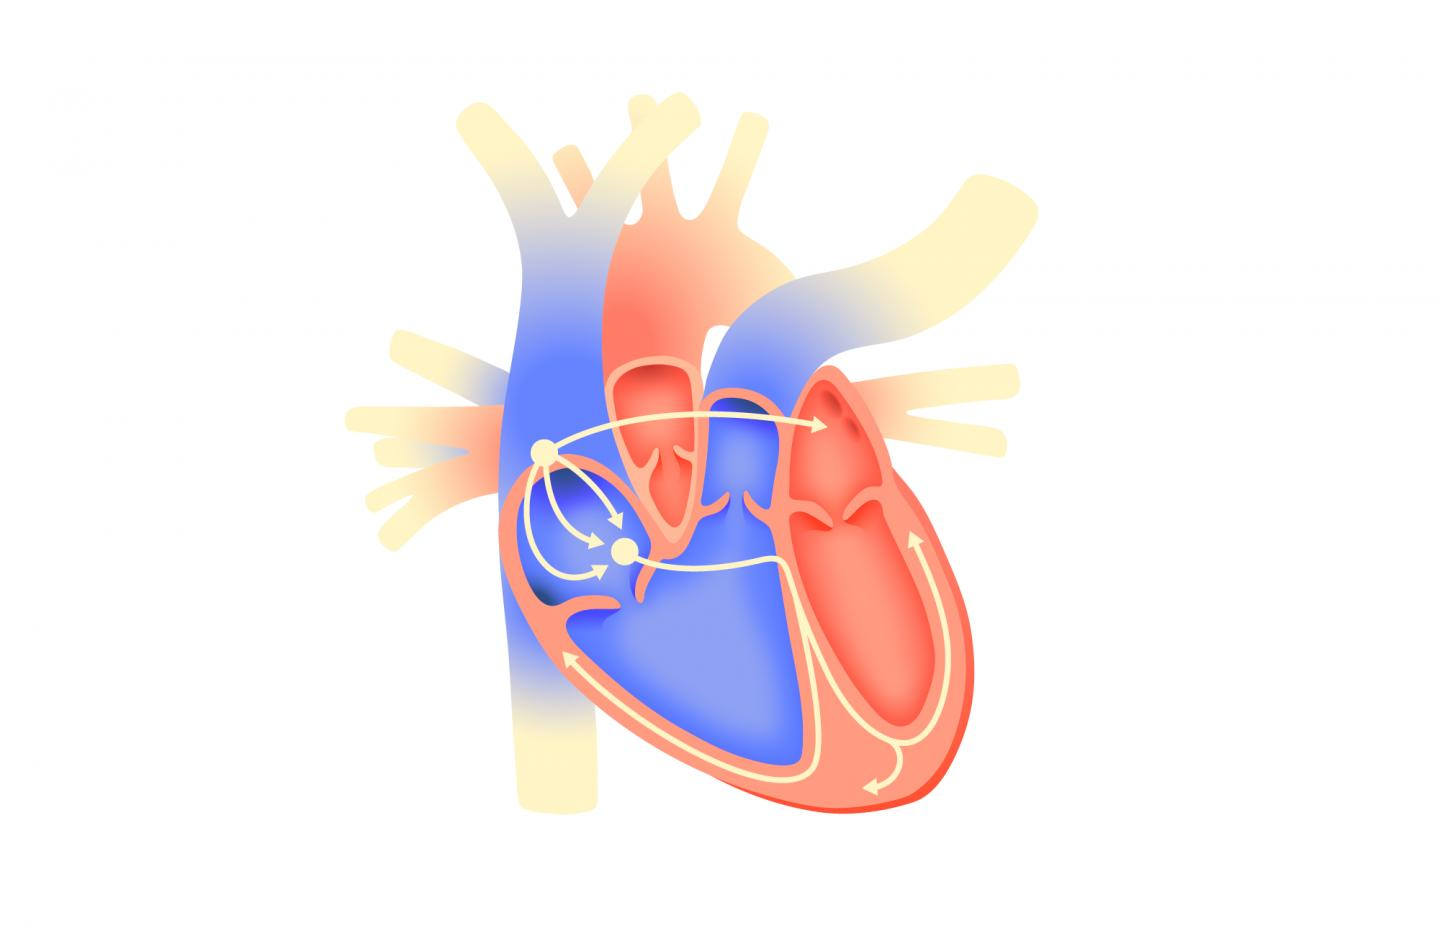 An illustration depicting an electrical excitation initiated in the right atrium spreading through the cardiac conduction system. Image via tsarcyanide/MIPT.